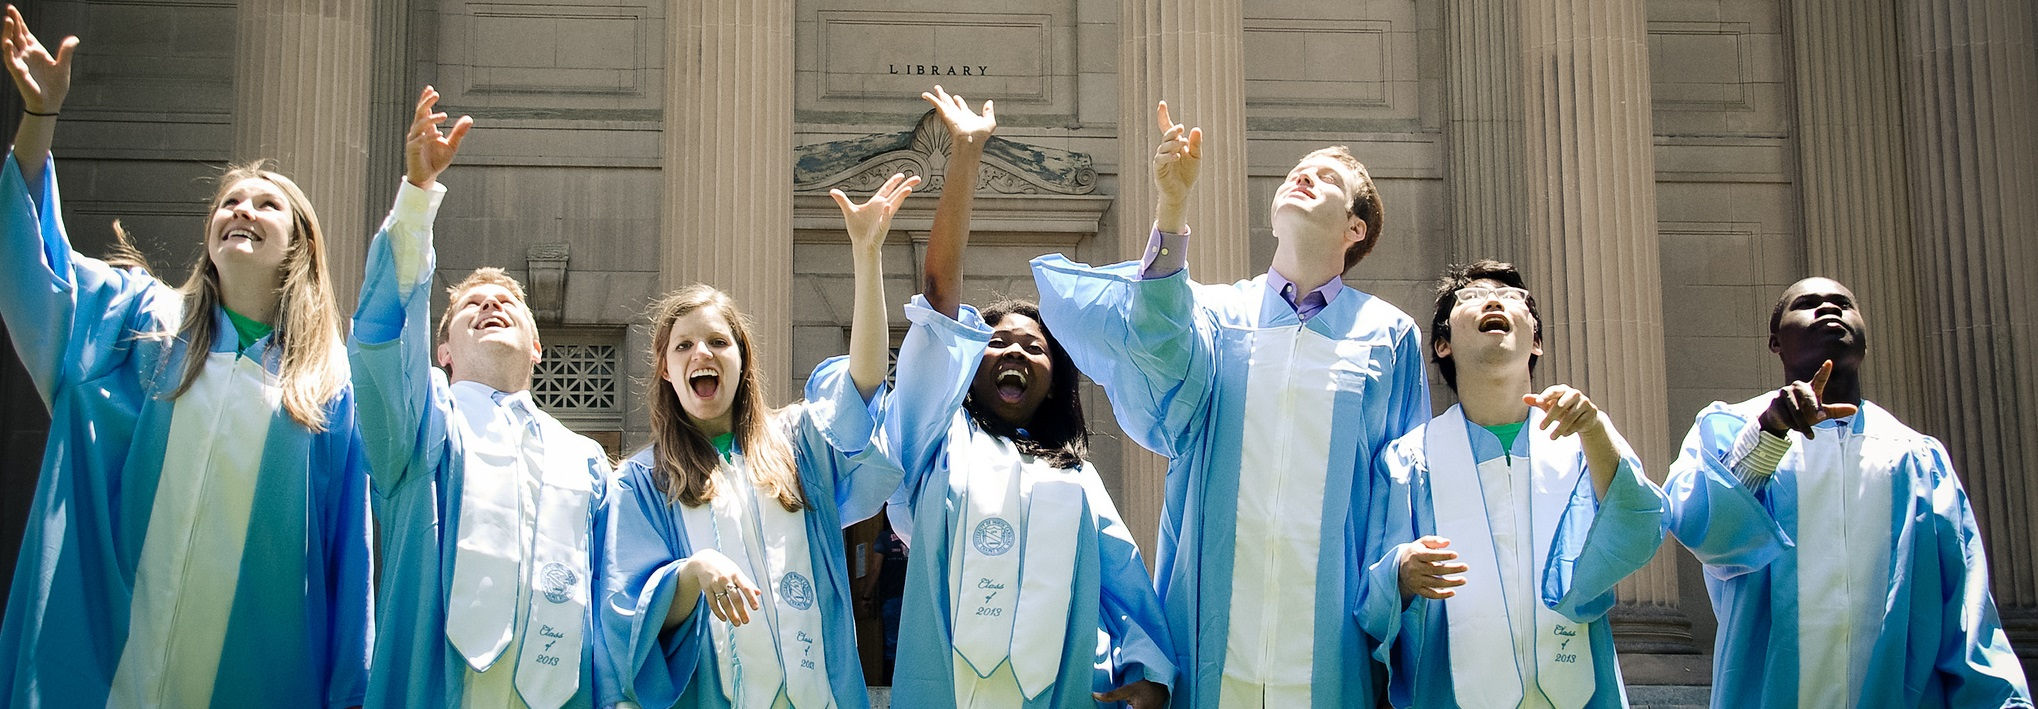 Columbia graduates in caps and gowns celebrating